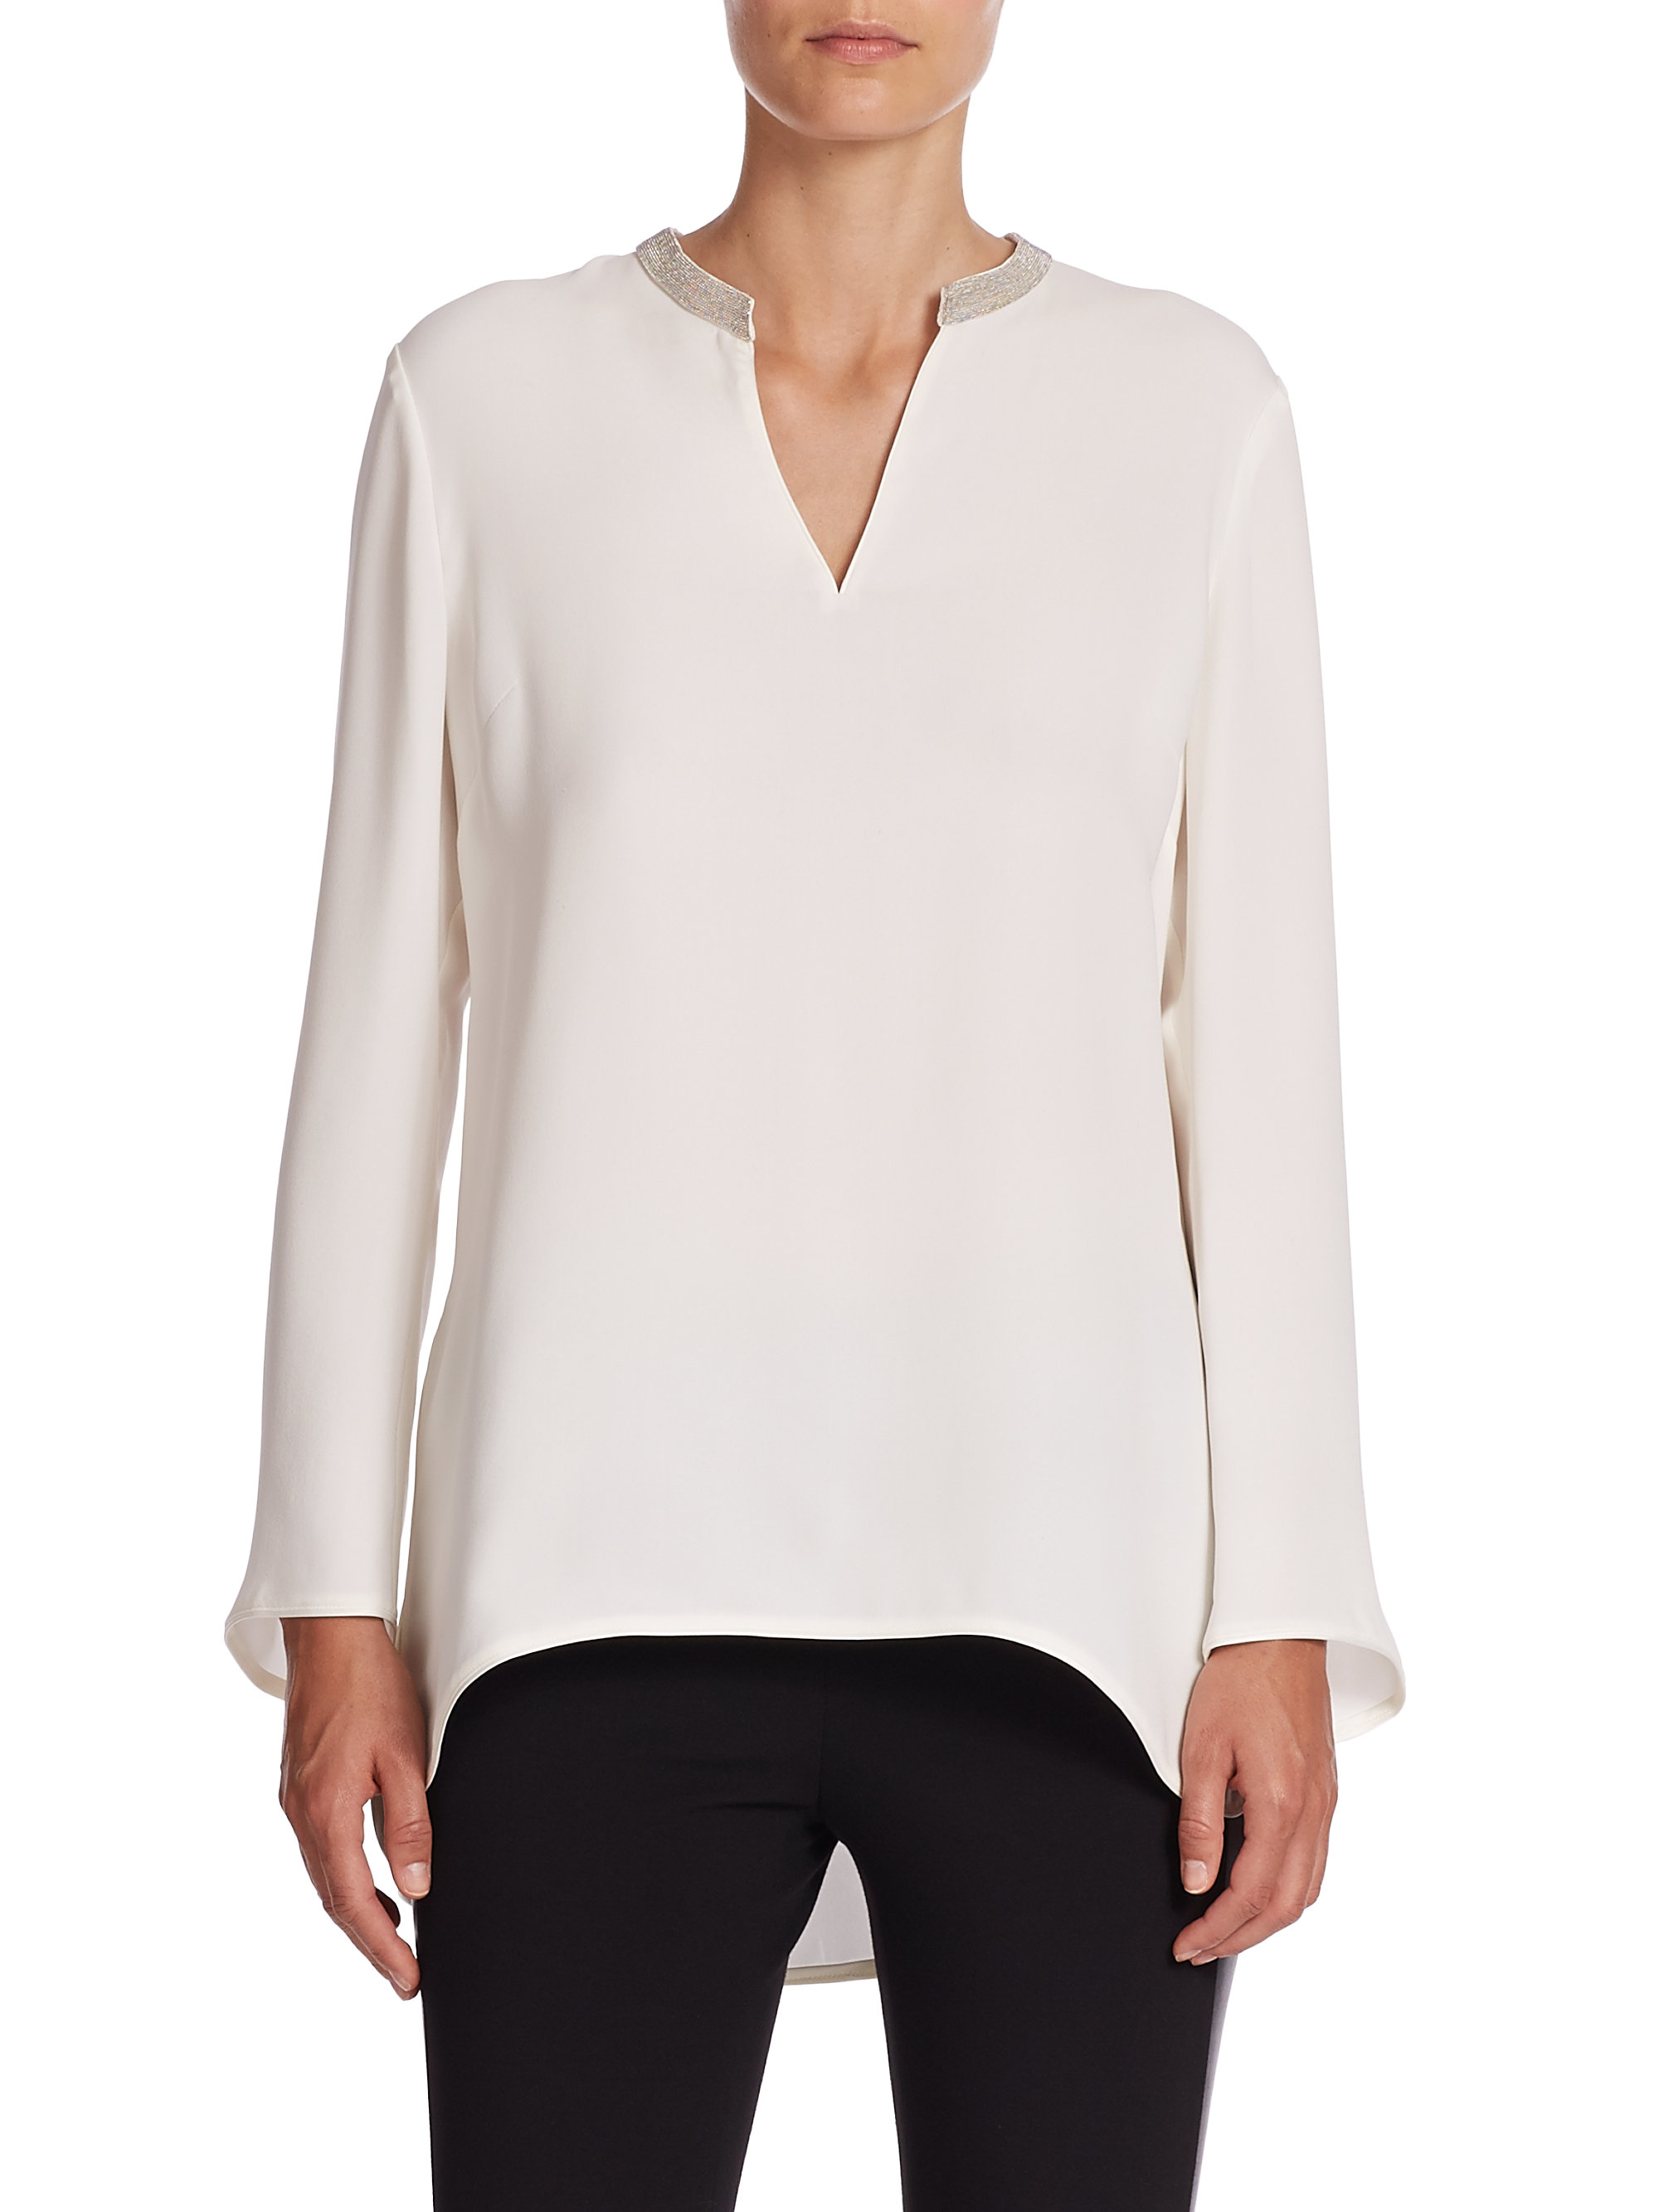 Buy Cheap With Paypal Lafayette 148 Embellished Silk Top Looking For Free Shipping 2018 Newest Sale Shop qA6Eif